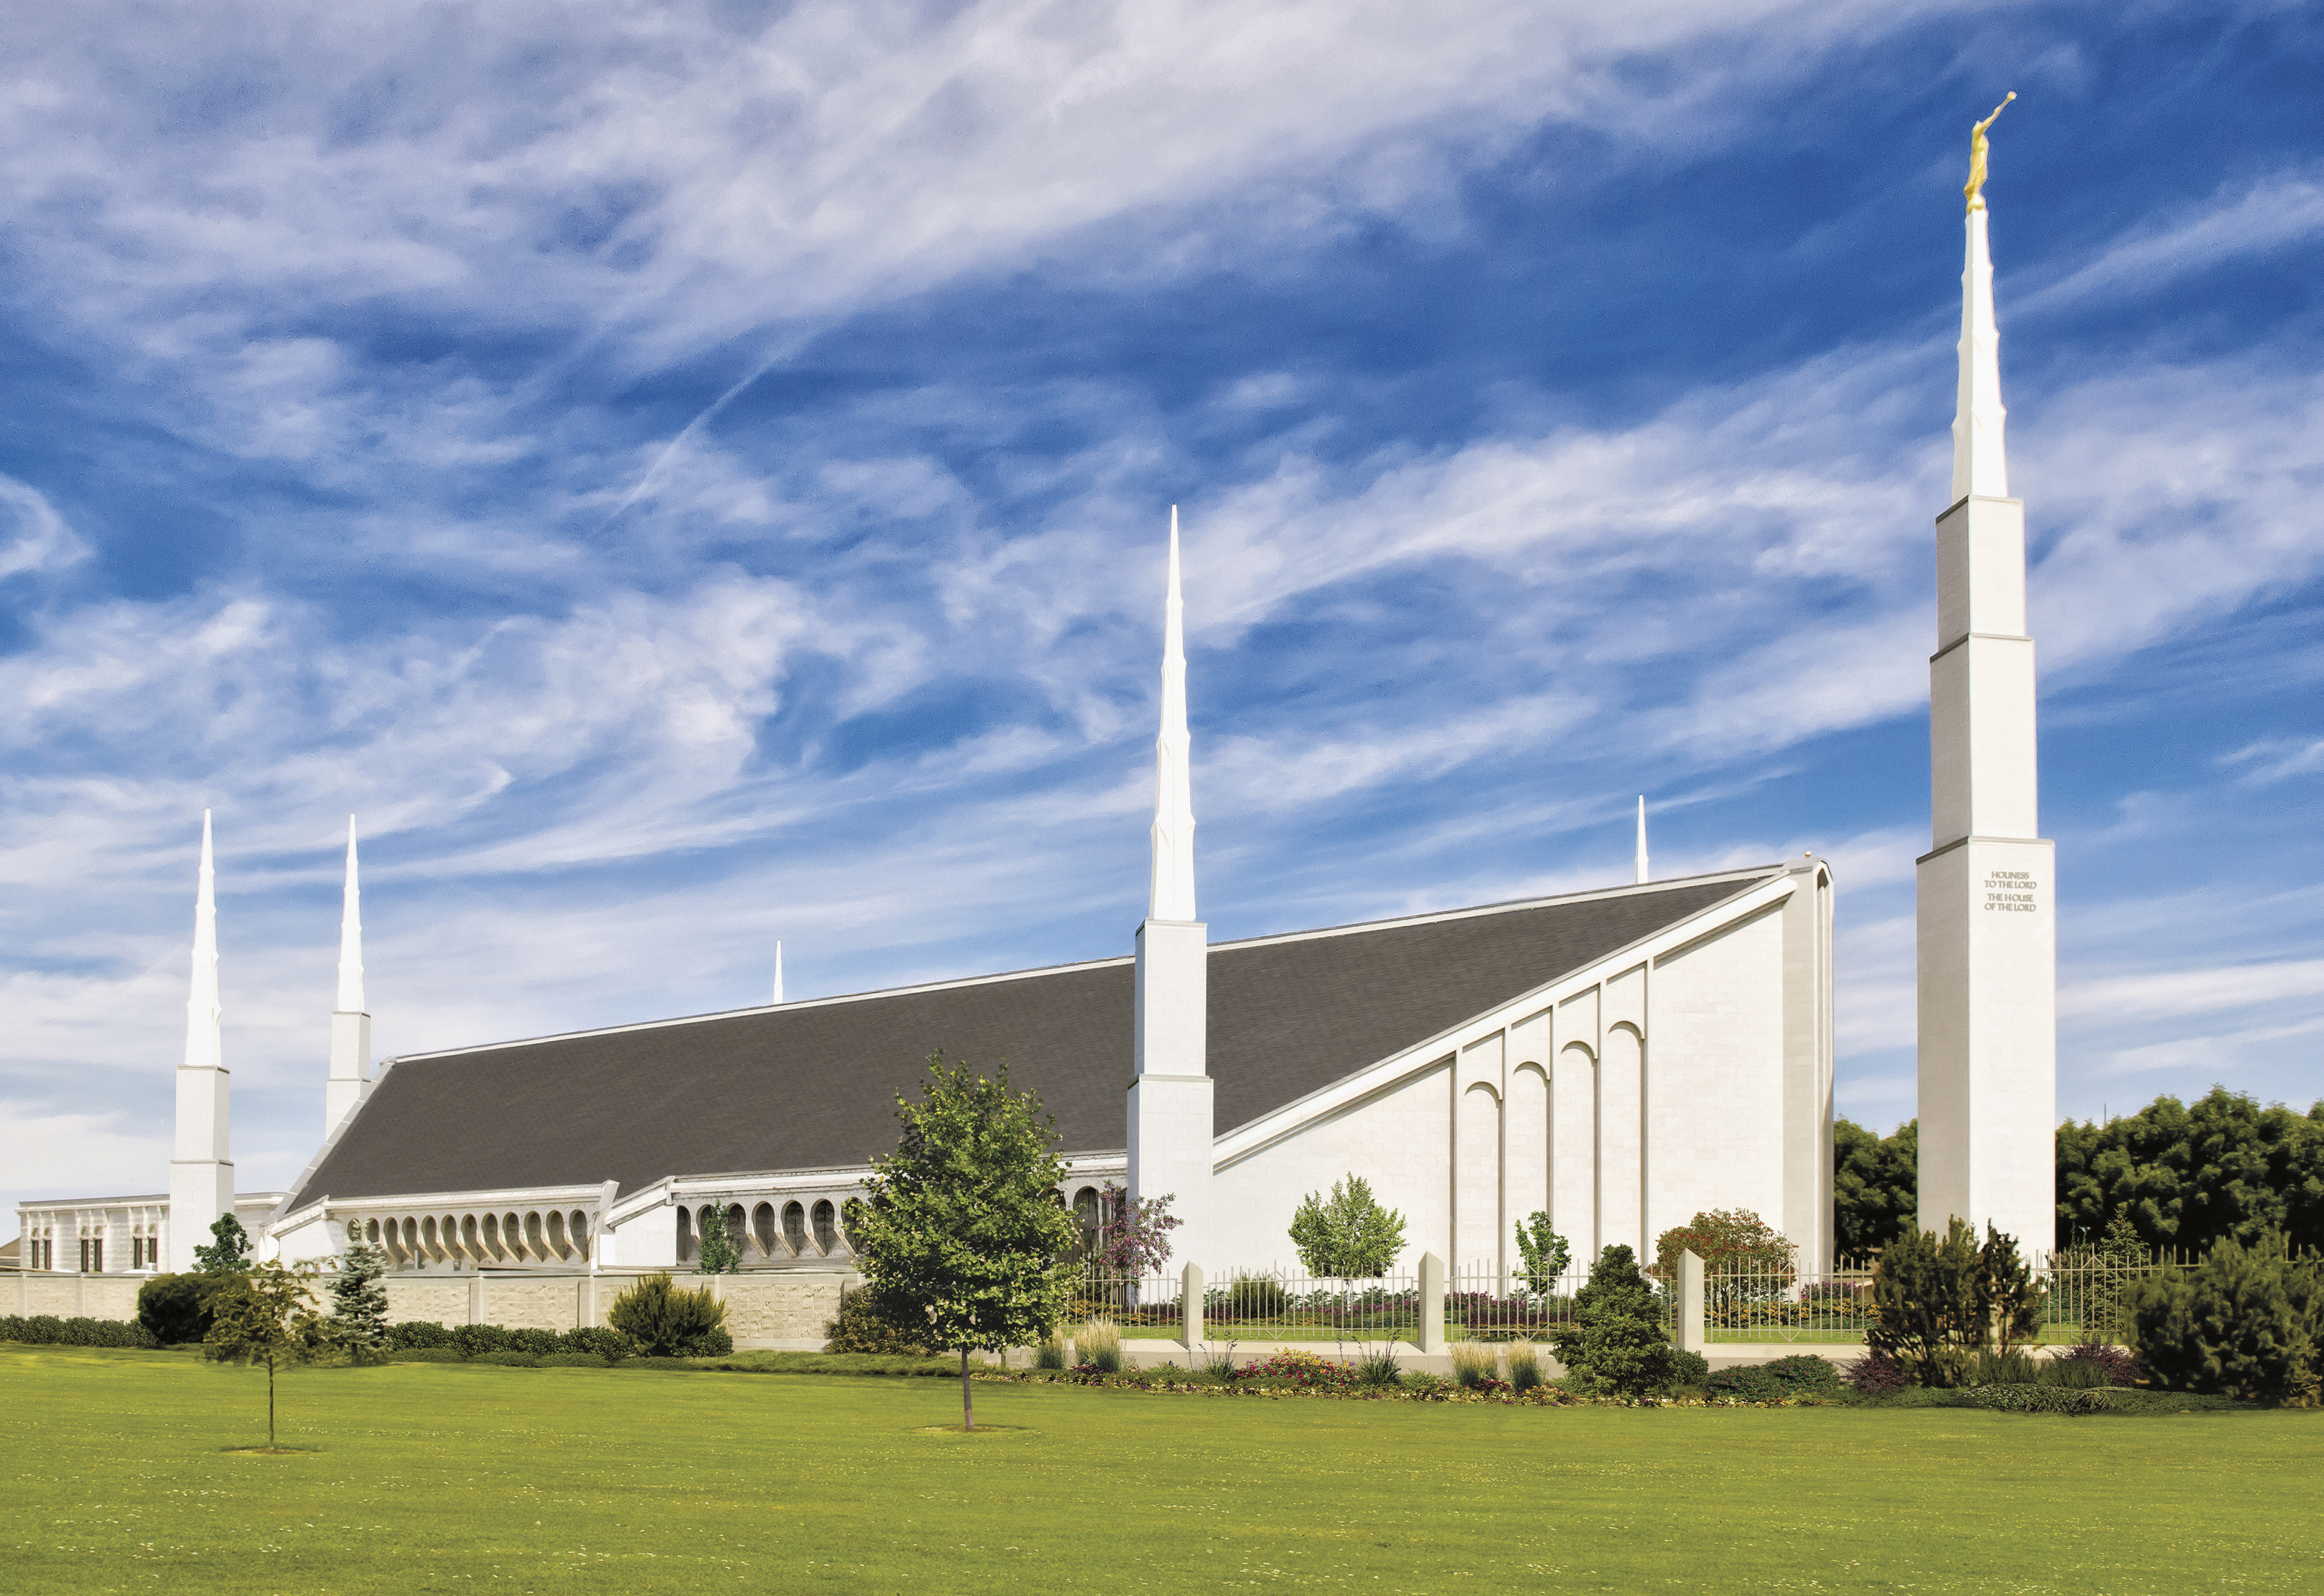 One side of the Boise Idaho Temple, surrounded by six spires.